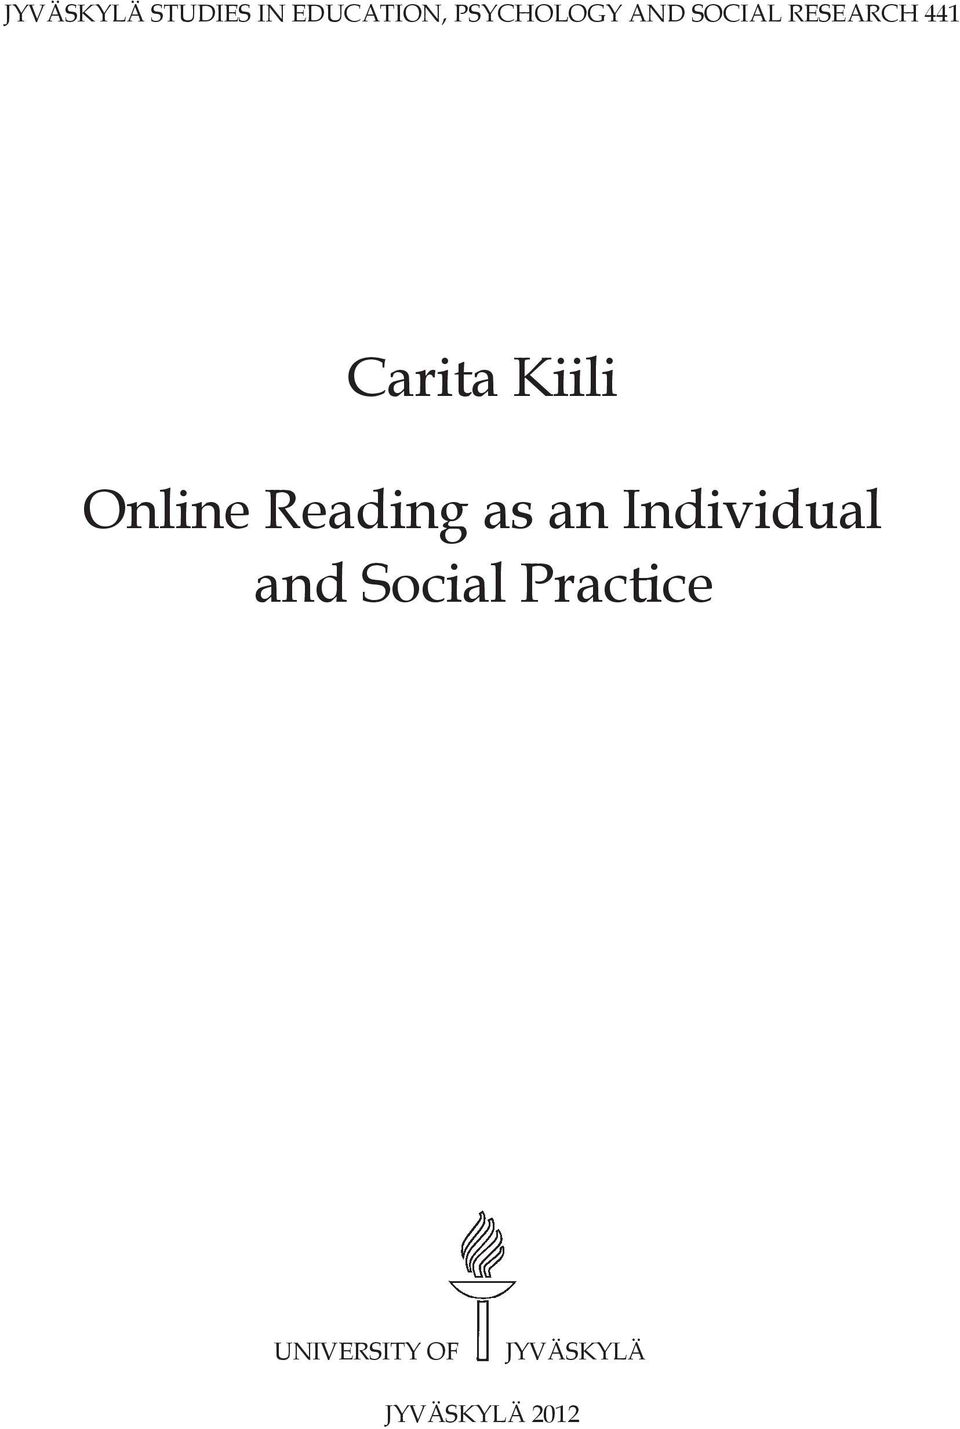 Online Reading as an Individual and Social